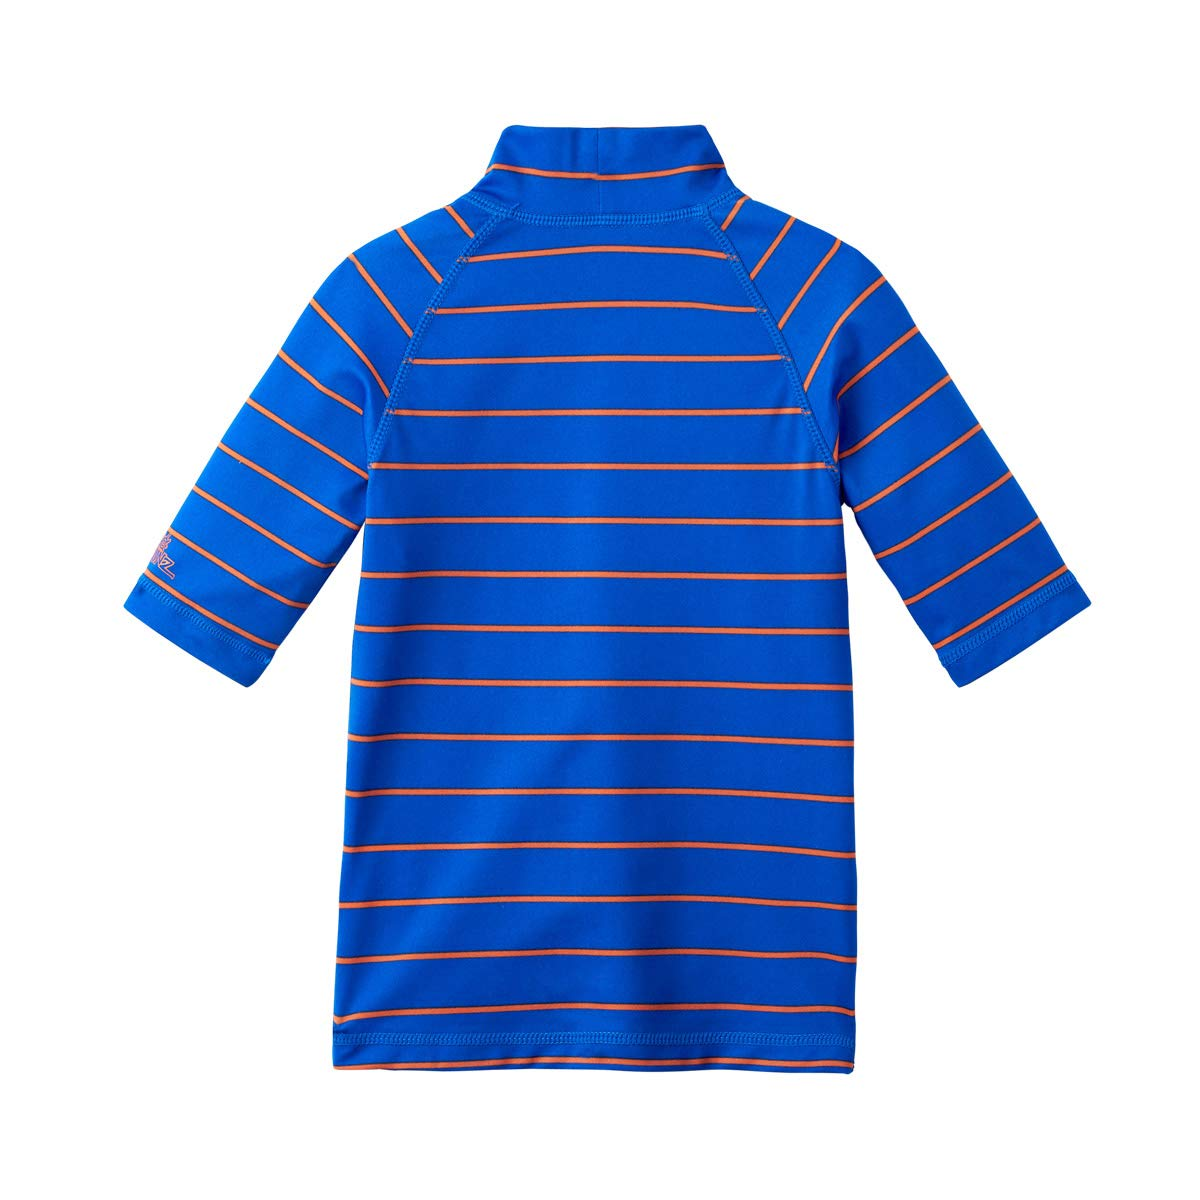 UV Skinz Boys Short Sleeve Sun /& Swim Shirt Quick Drying Knit SPF 50 Fabric